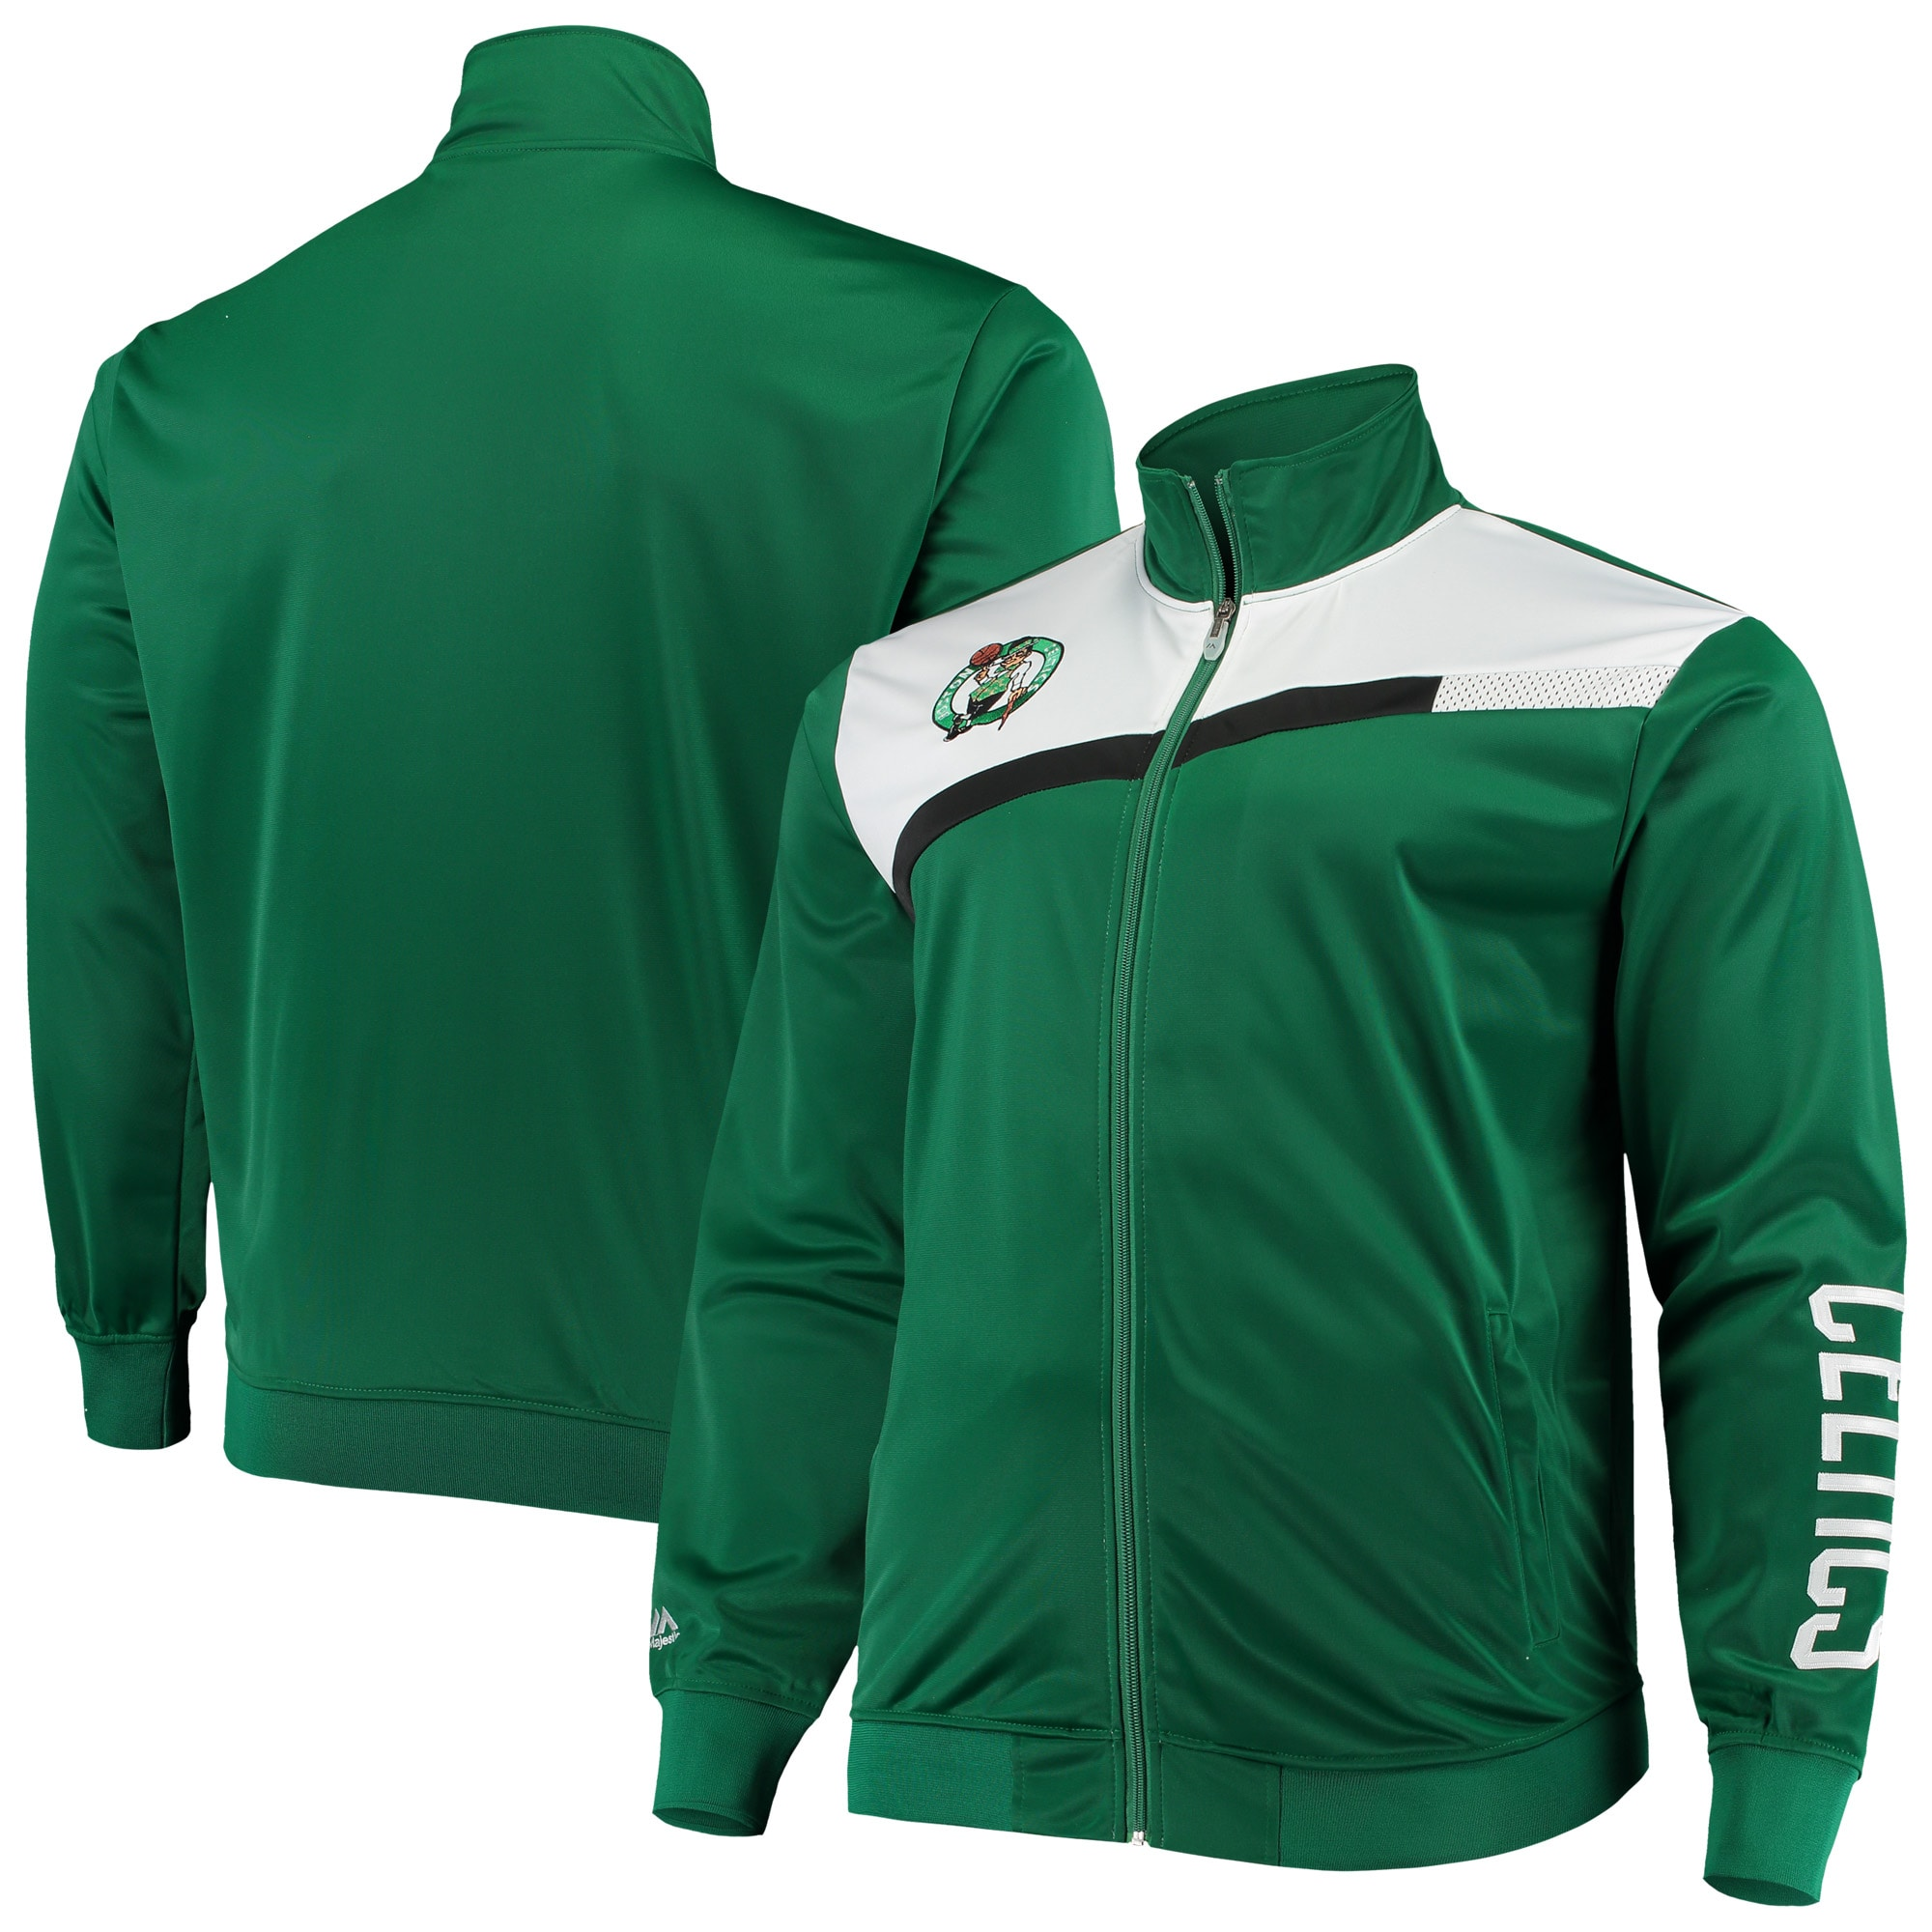 Boston Celtics Big & Tall Showtime Tricot Full-Zip Track Jacket - Kelly Green/White